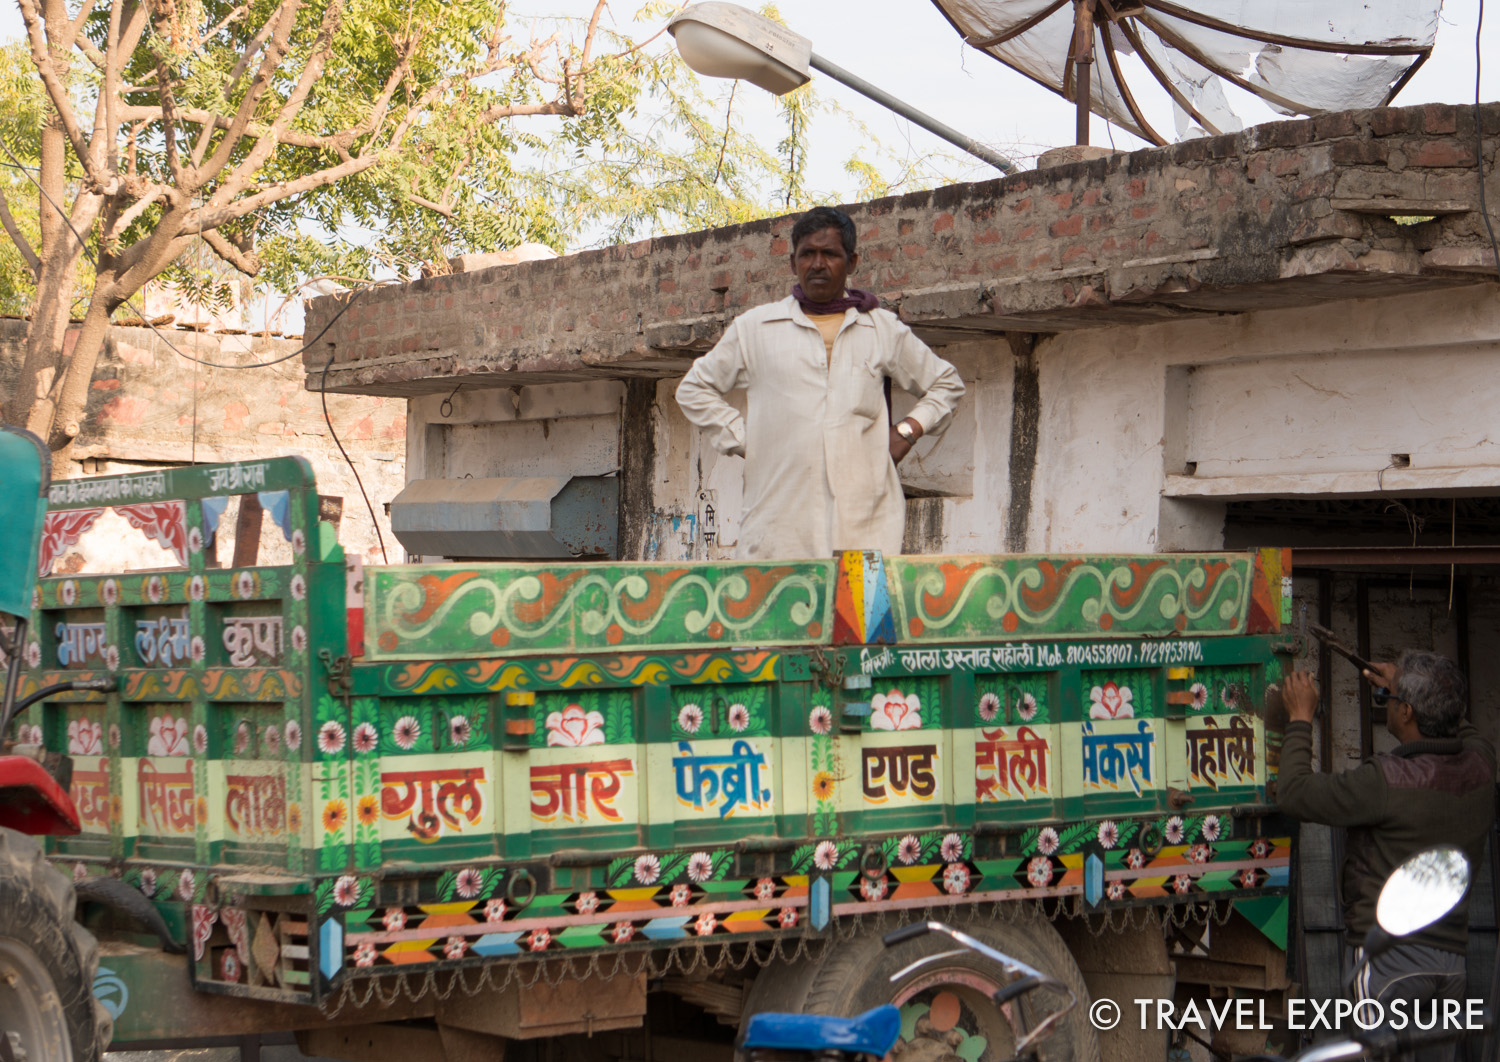 Decorated truck in  Tordi Sagar village